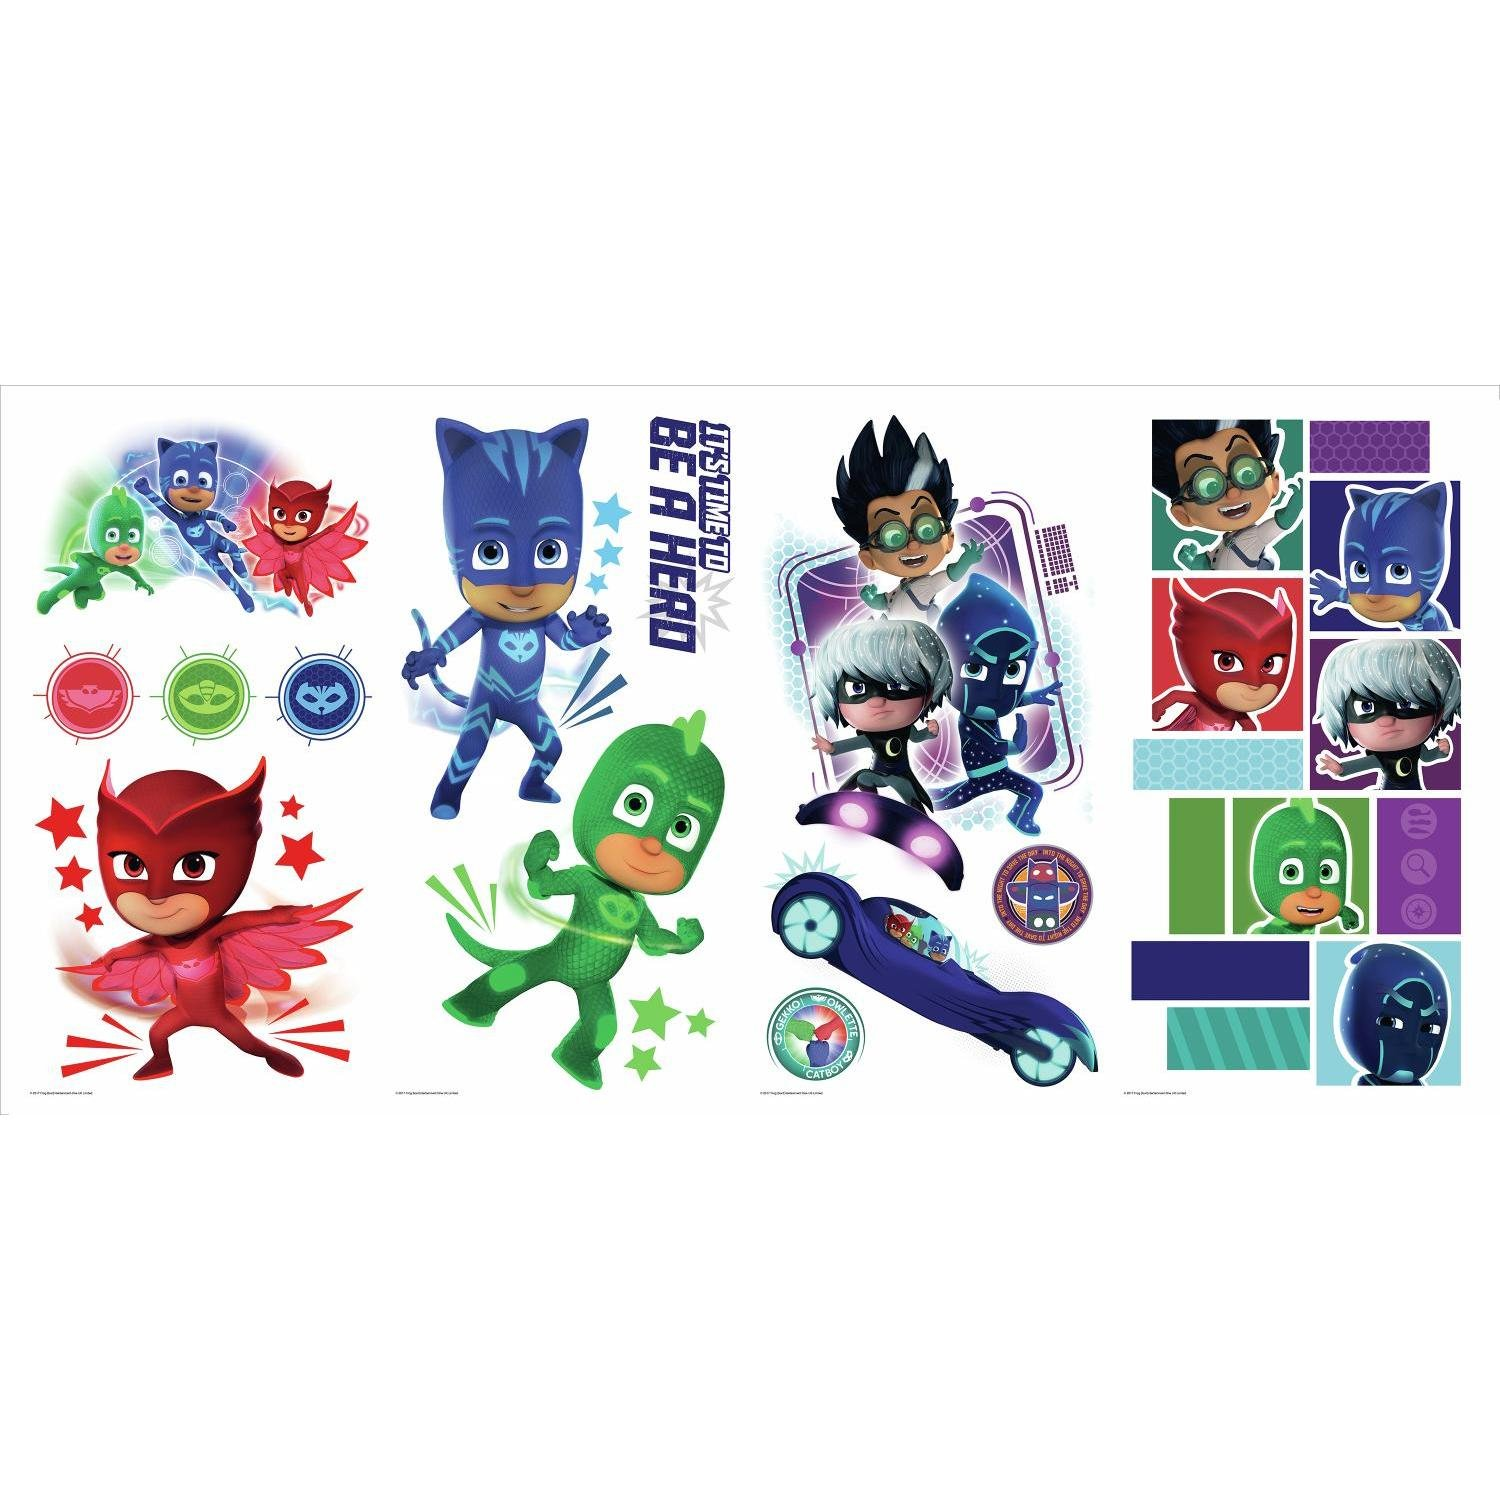 RoomMates RMK3586SCS PJ Masks Peel and Stick Wall Decals, 9 inches X 17.375 inches by RoomMates (Image #2)